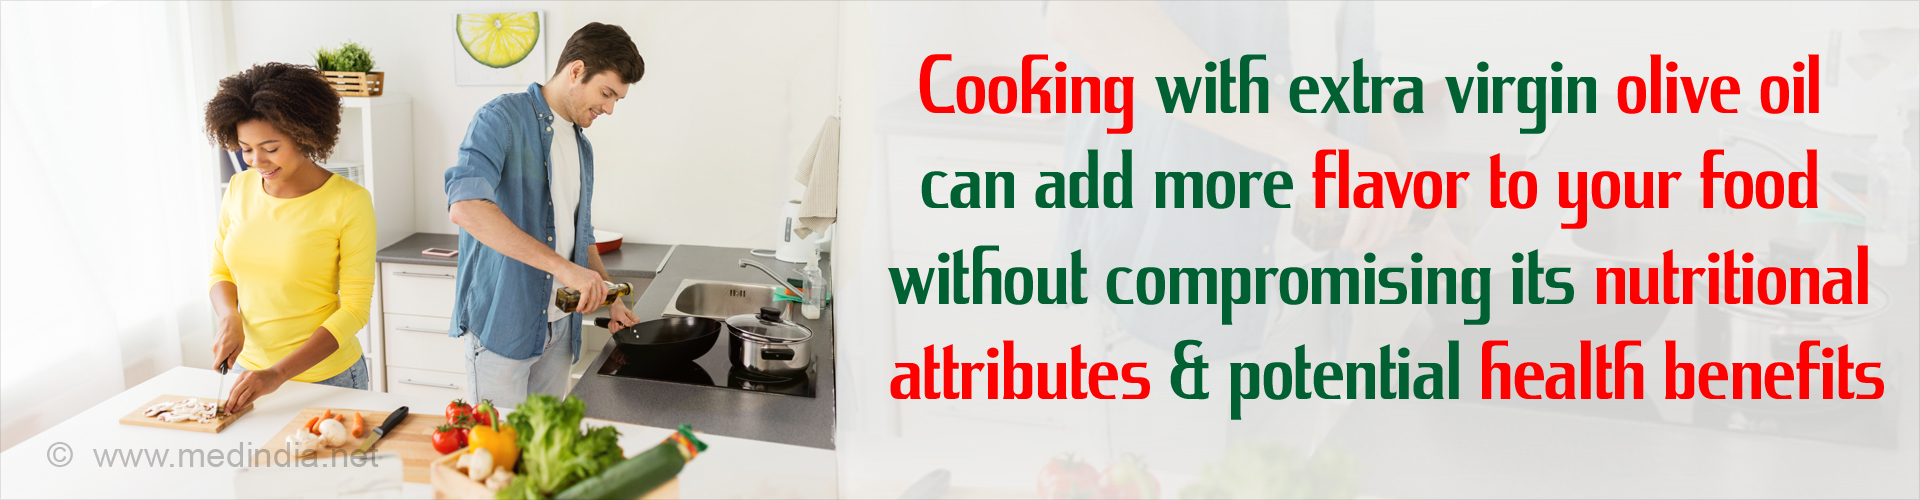 Extra Virgin Olive Oil Does Not Lose Its Health Benefits Even After Cooking